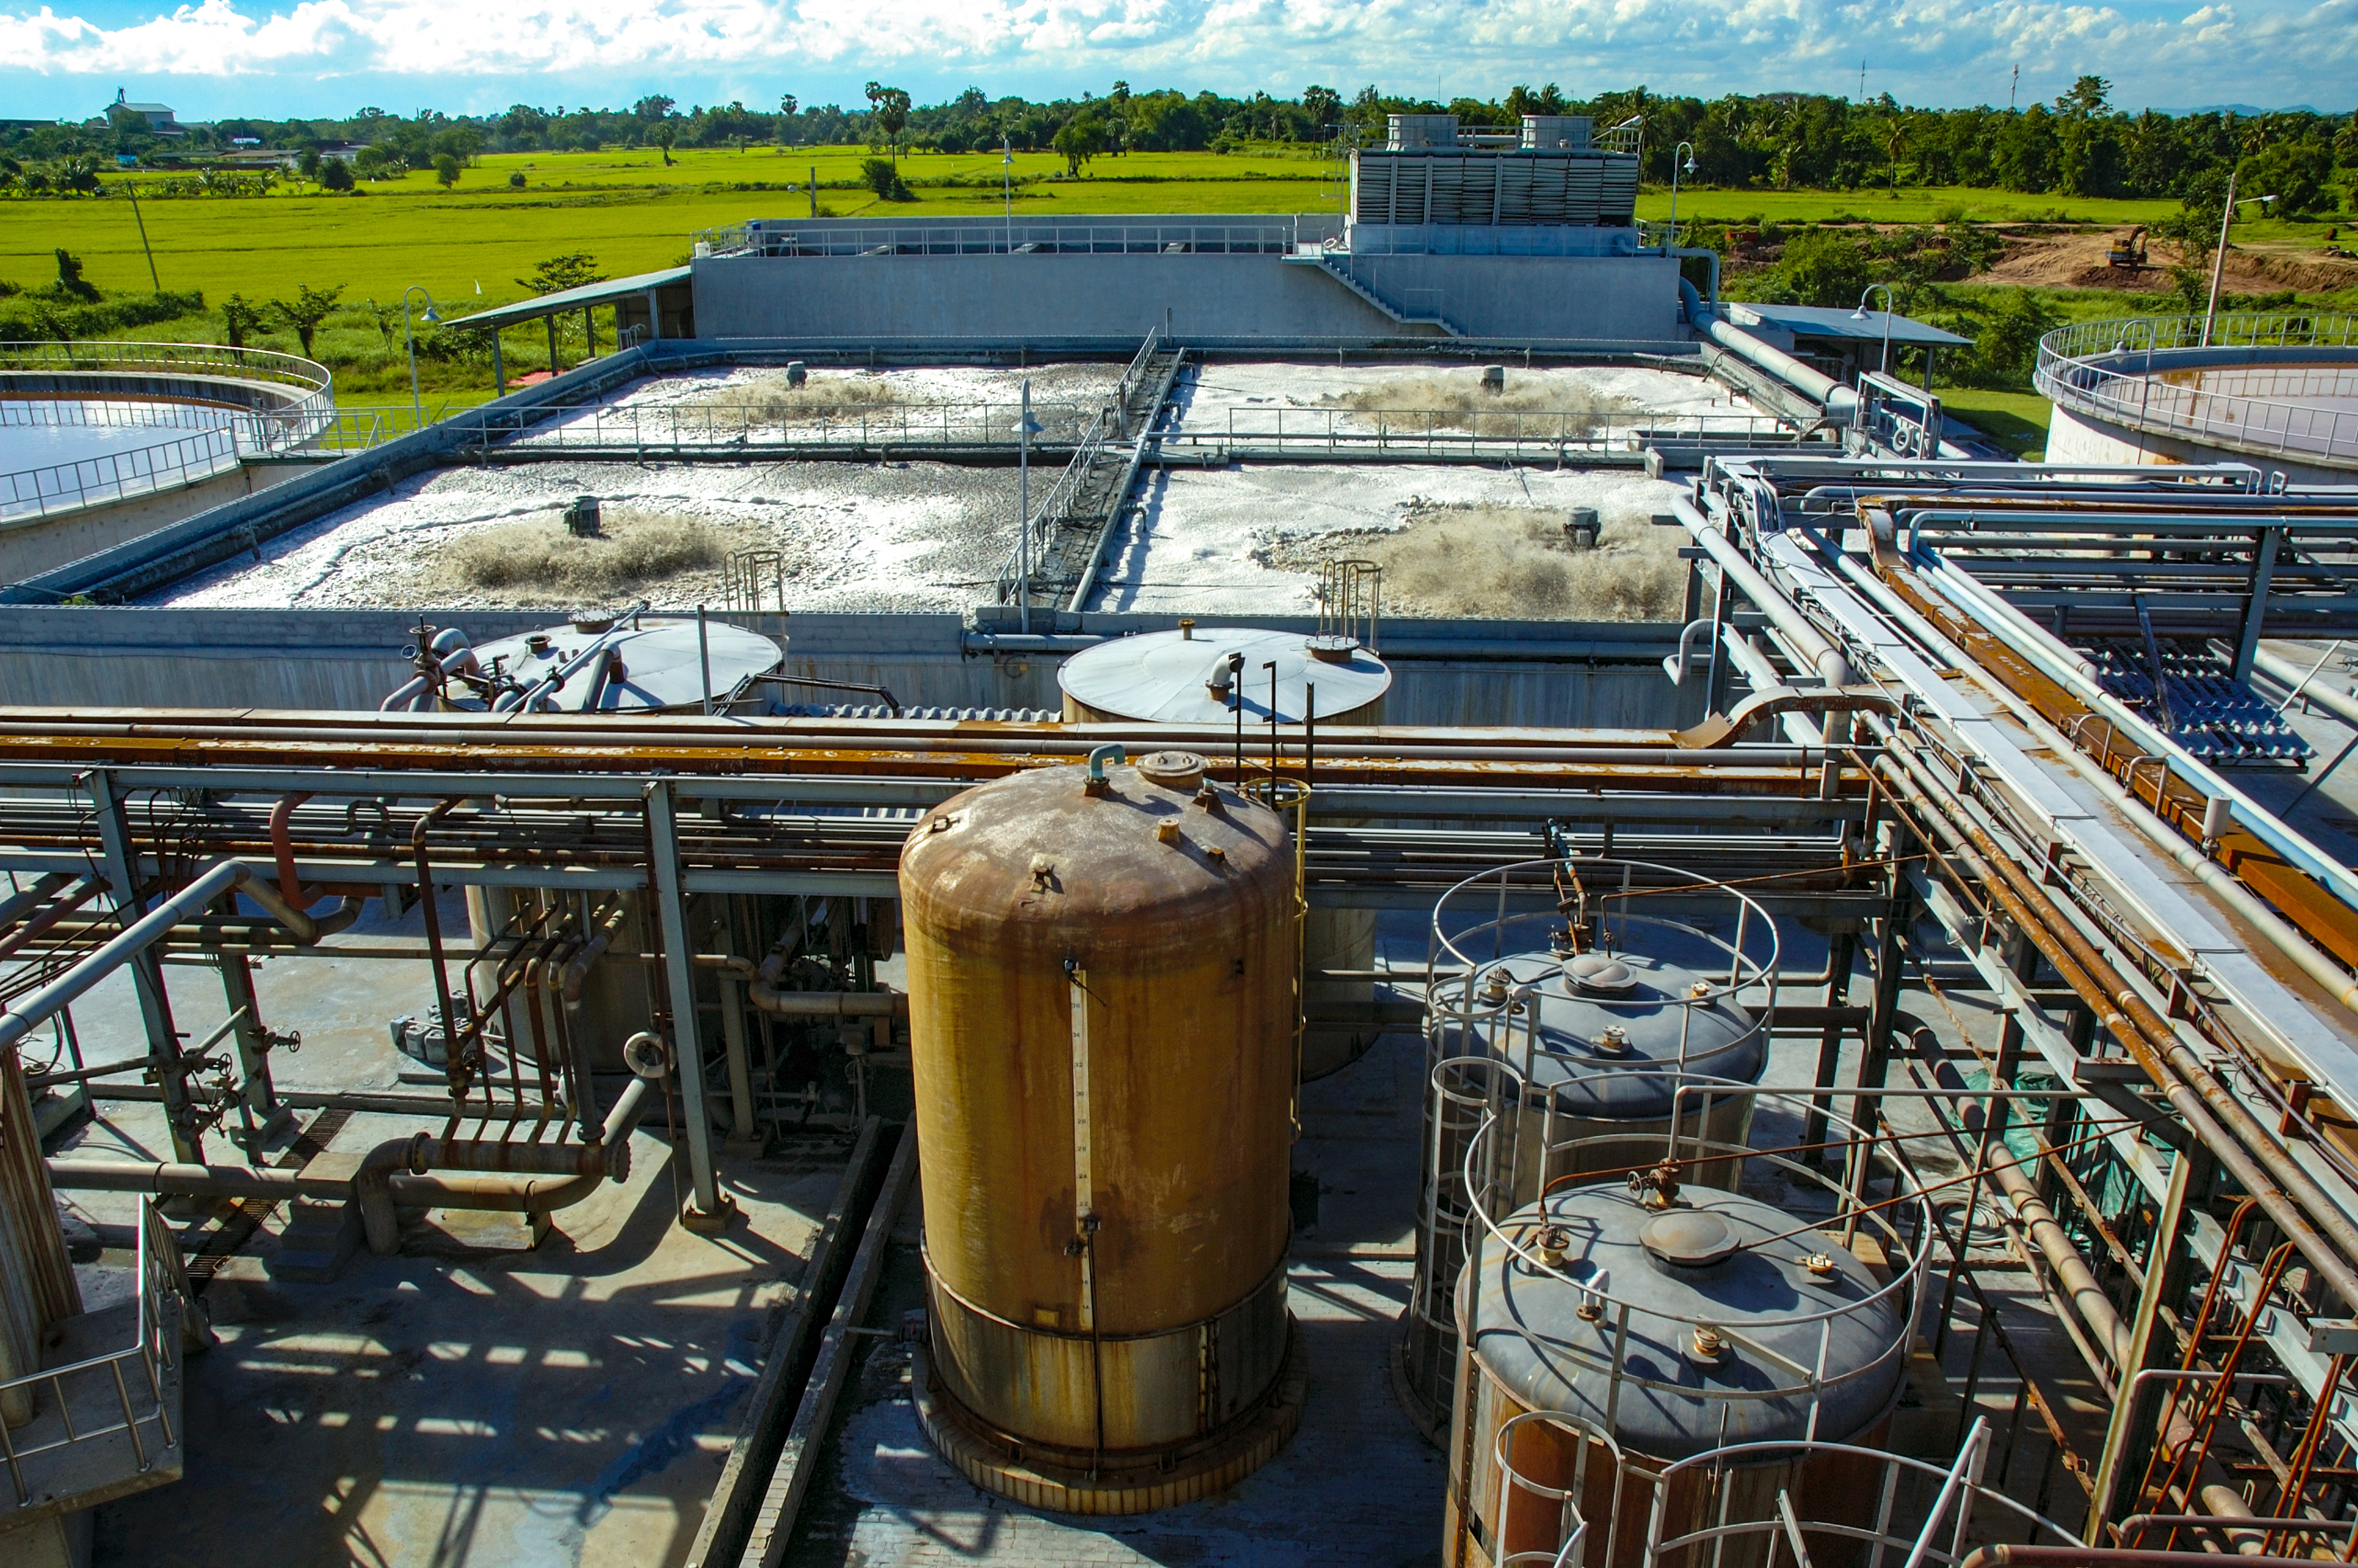 Waste water treatment, purification plant